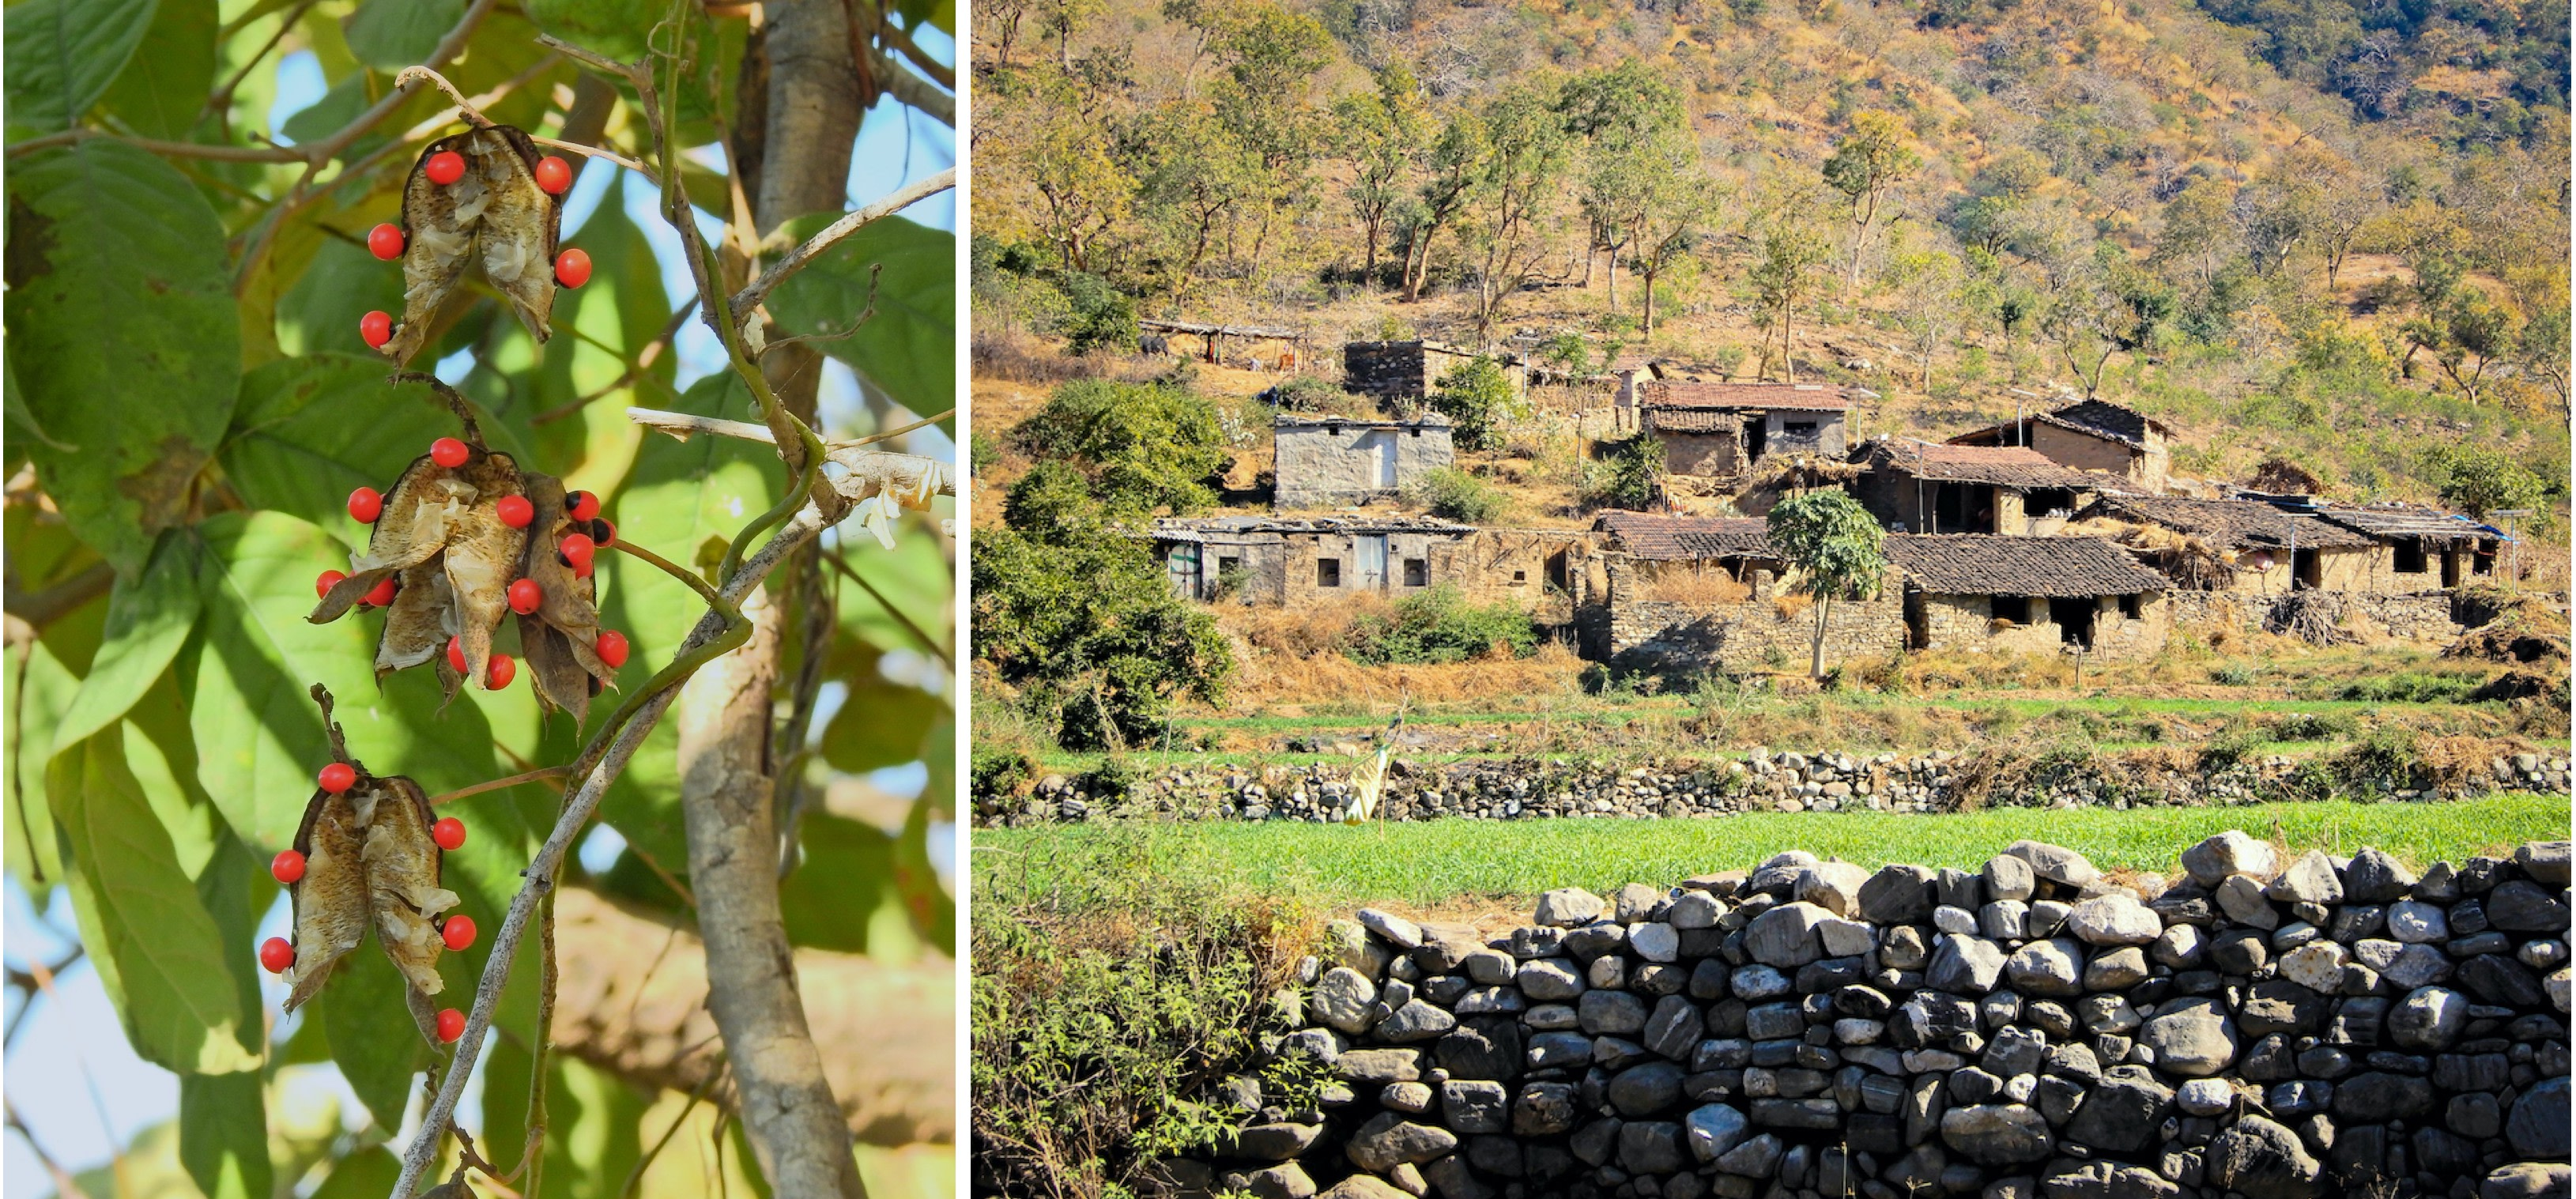 "(Left) Abrus precatorius or the jequirity bean is best known for its brightly coloured, toxic seeds. Locally known as the ""chirmi"", the plant is associated with a traditional Rajasthani folk song and its seeds were formerly used to weigh gold. (Right) Human settlements within the two sanctuaries, coupled with livestock grazing, adversely affect the movement patterns of wildlife.  Photos: Dr Sumit Dookia (left), Anirudh Nair (right)"